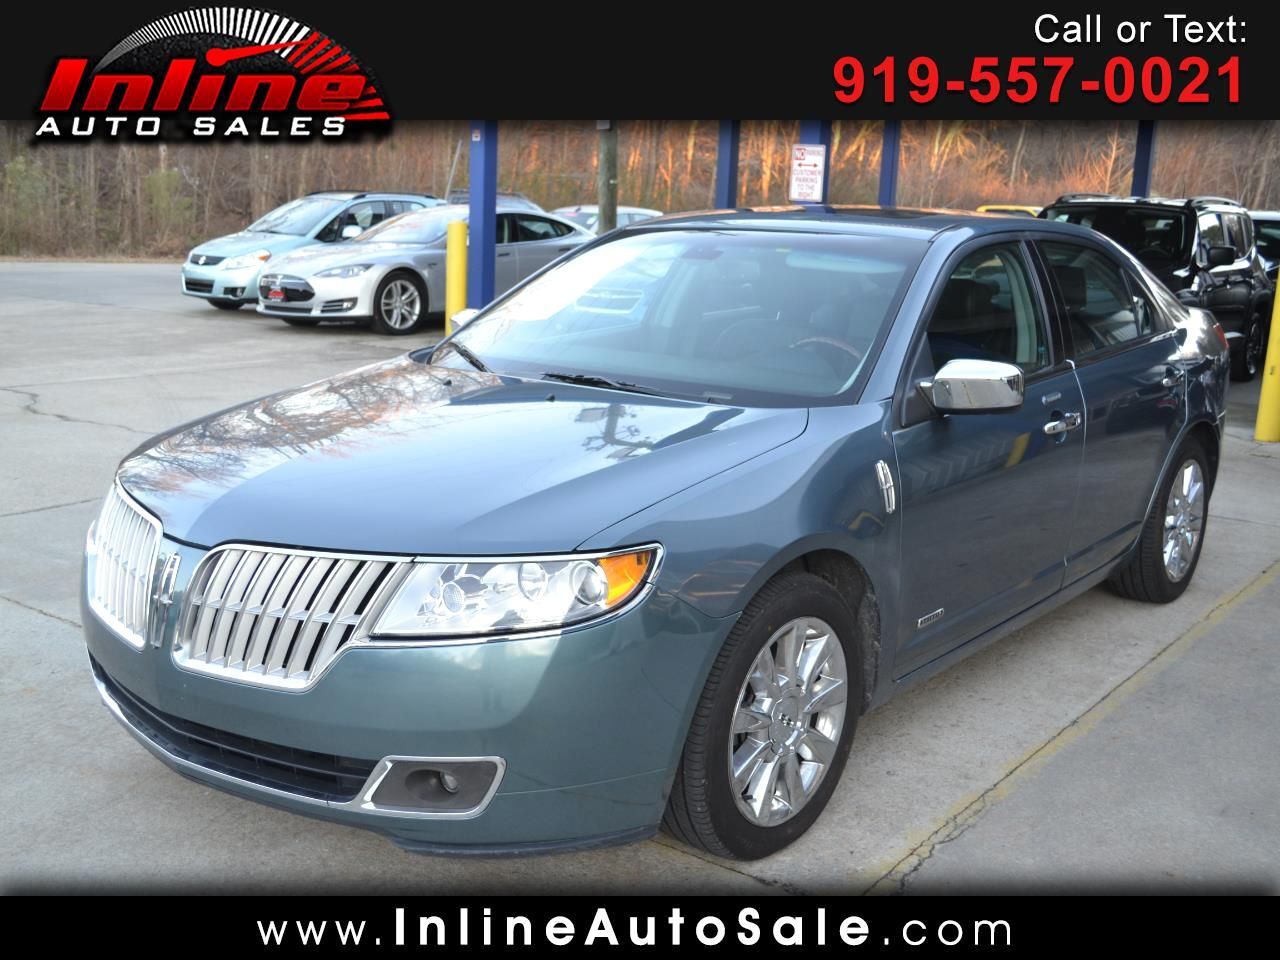 2011 Lincoln MKZ 4dr Sdn Hybrid FWD